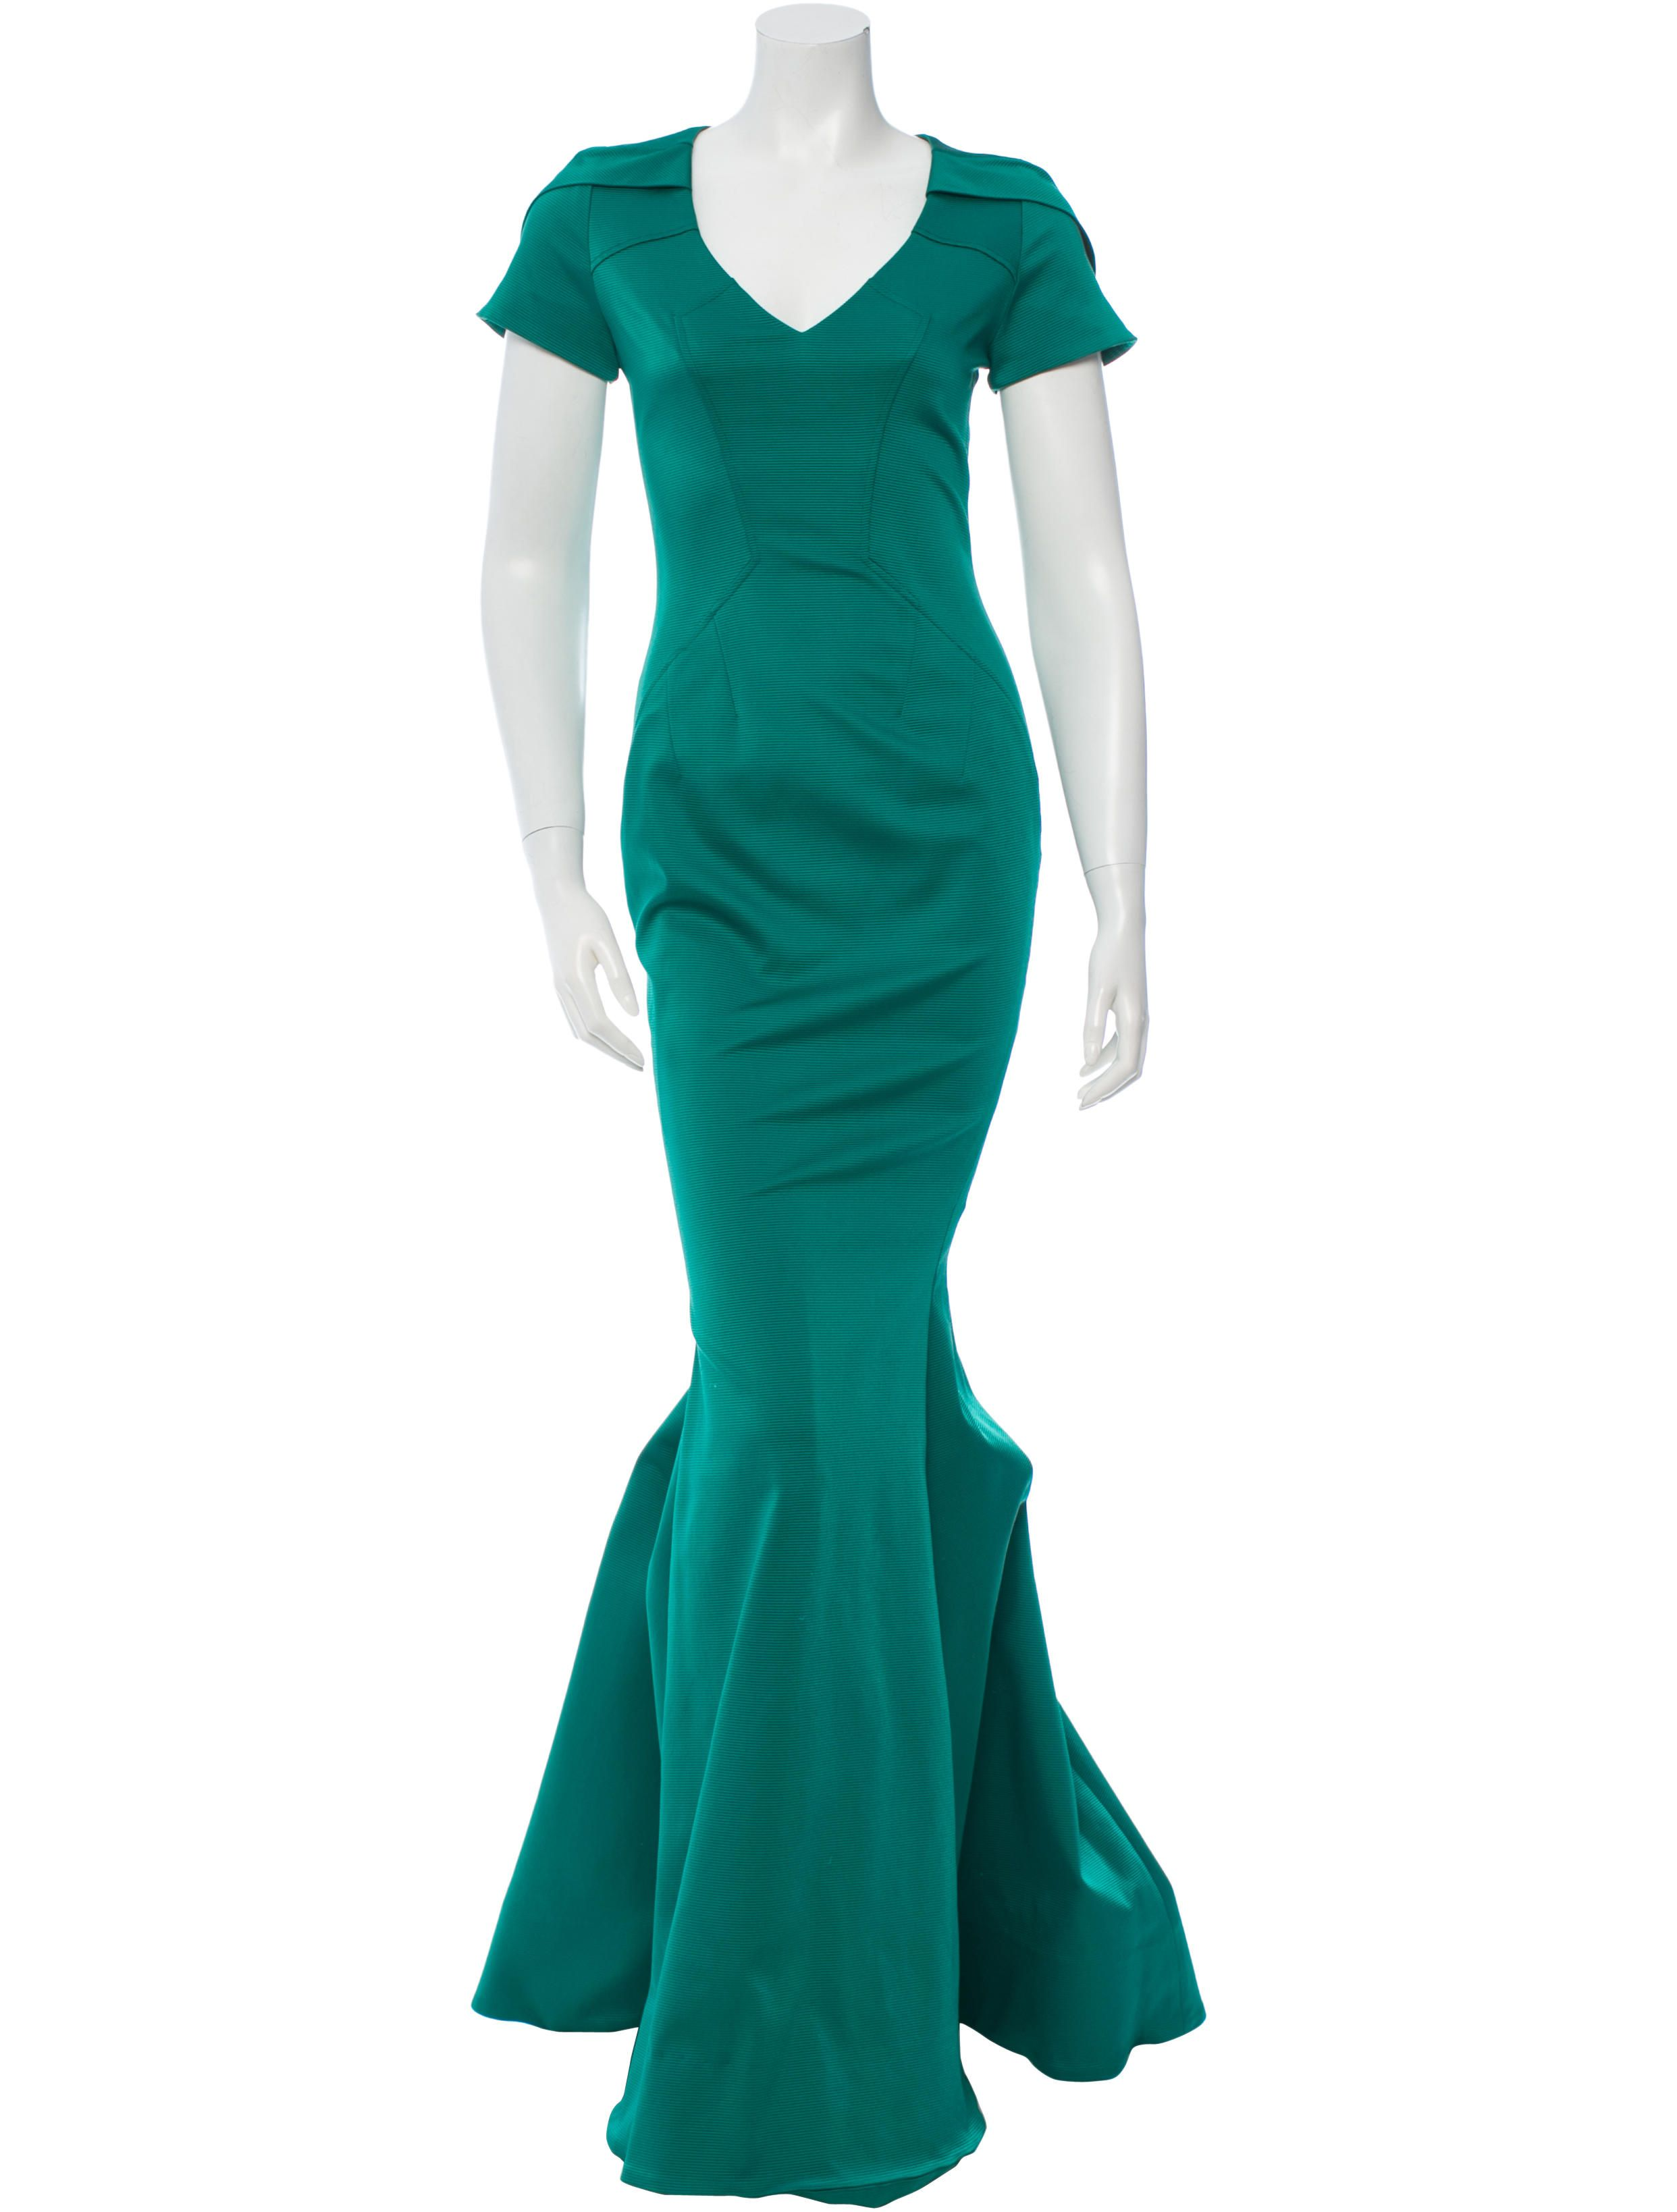 Green textured ZAC Zac Posen gown with short sleeves, V-neck and concealed back zip closure. Size not listed, estimated from measurements.